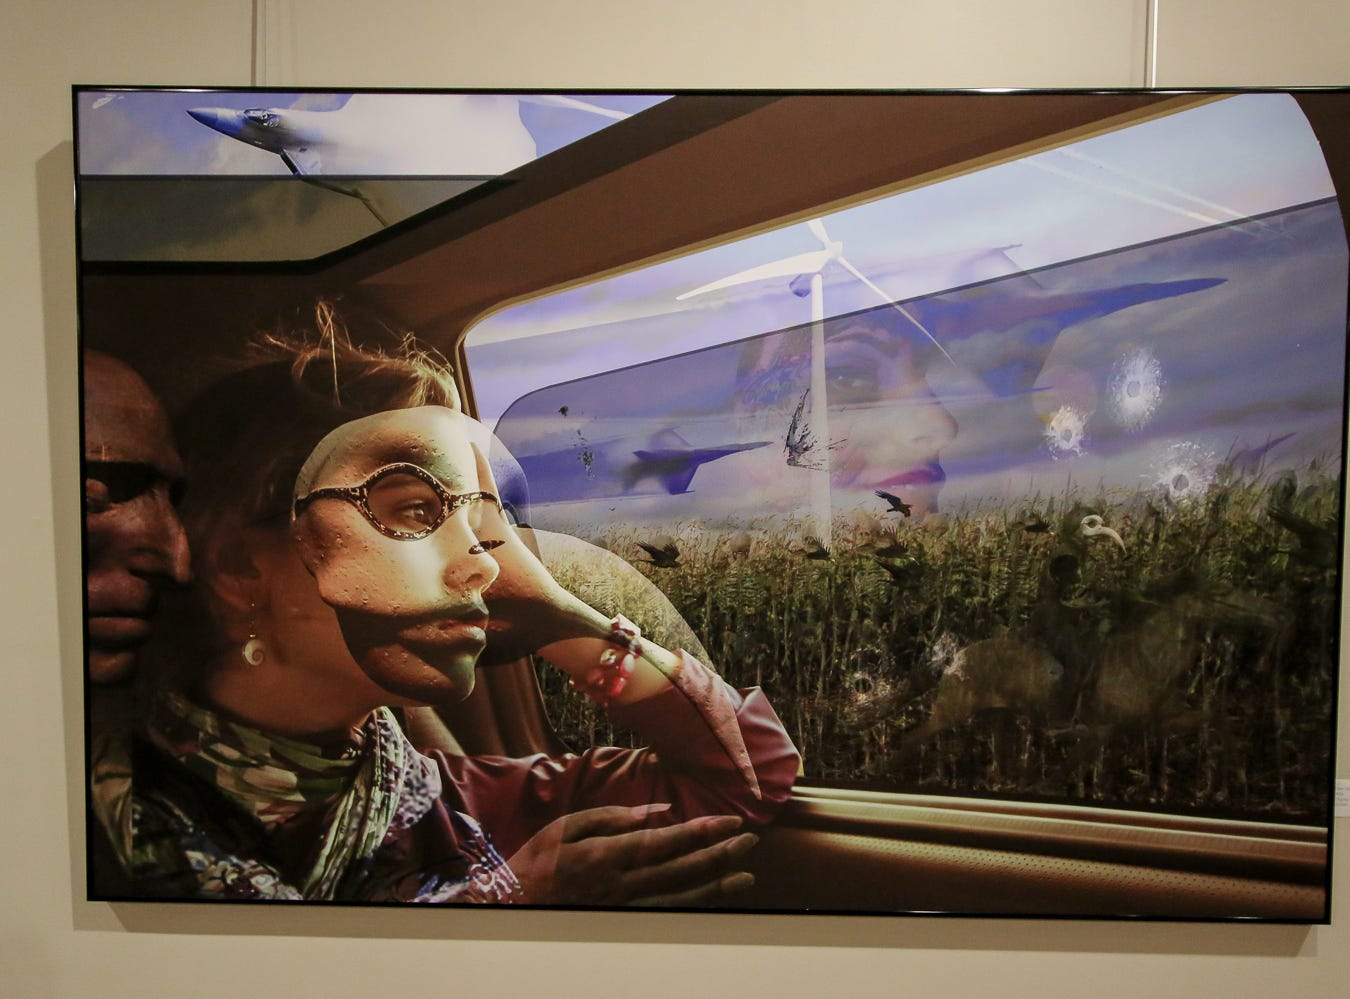 Some of the art on display at Artel Gallery during Gallery Night on Friday, Sept. 21, 2018.